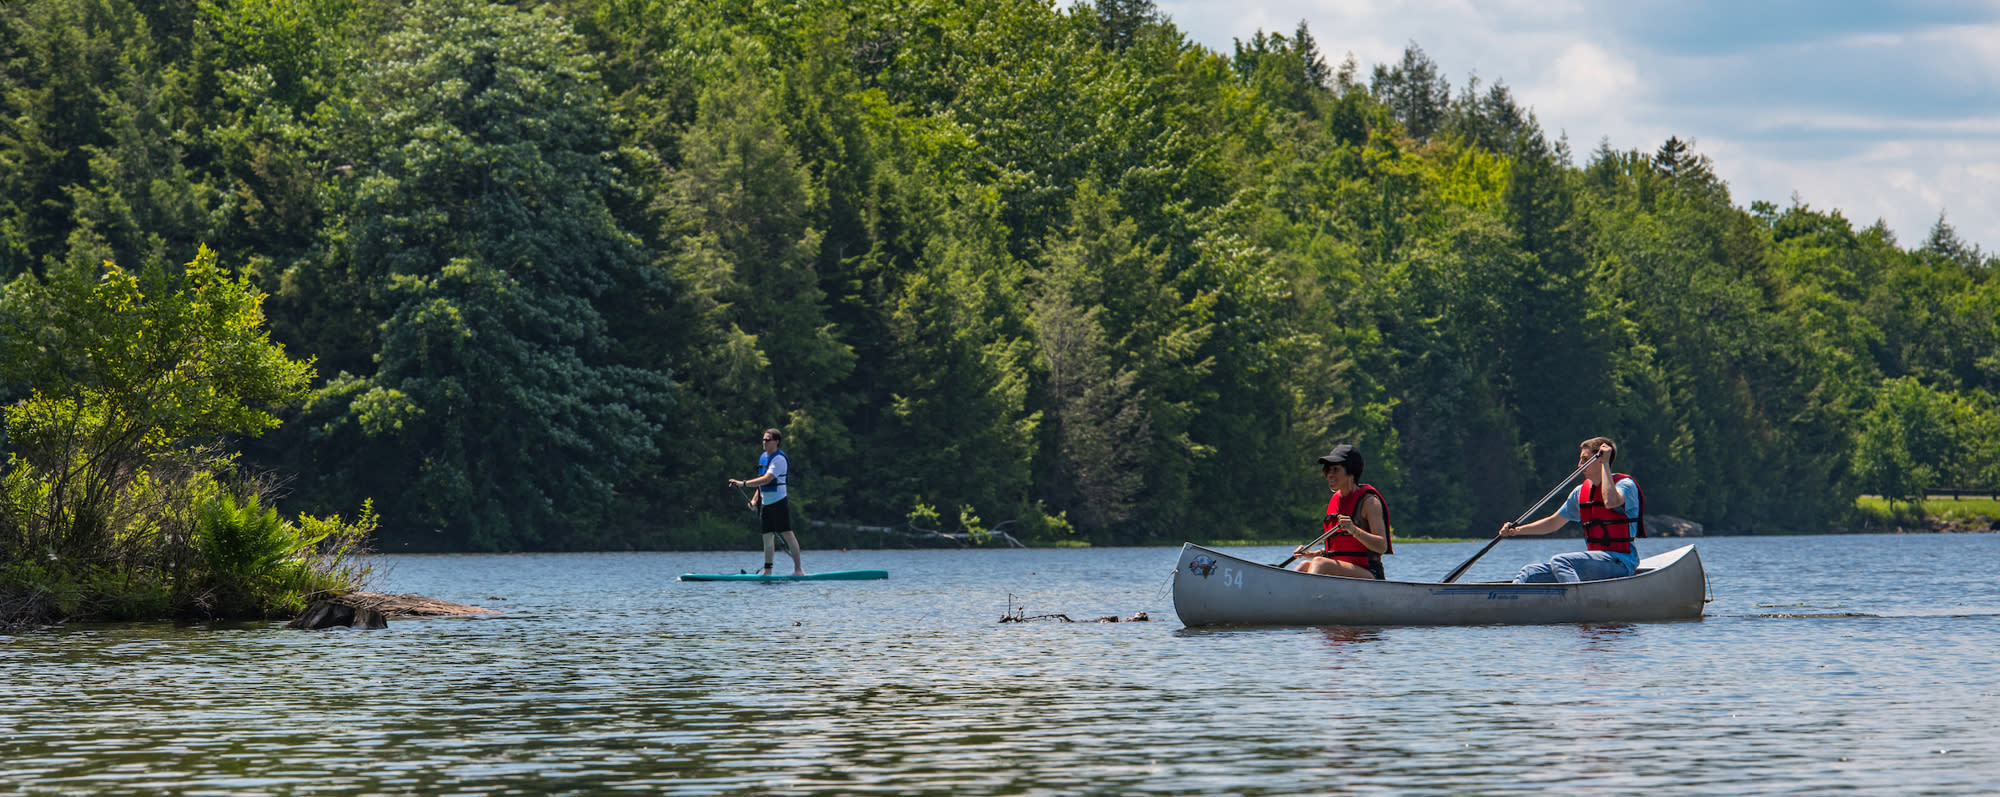 A photo of two people in a canoe and one person paddle boarding on a lake on Noth-South Lake Campground